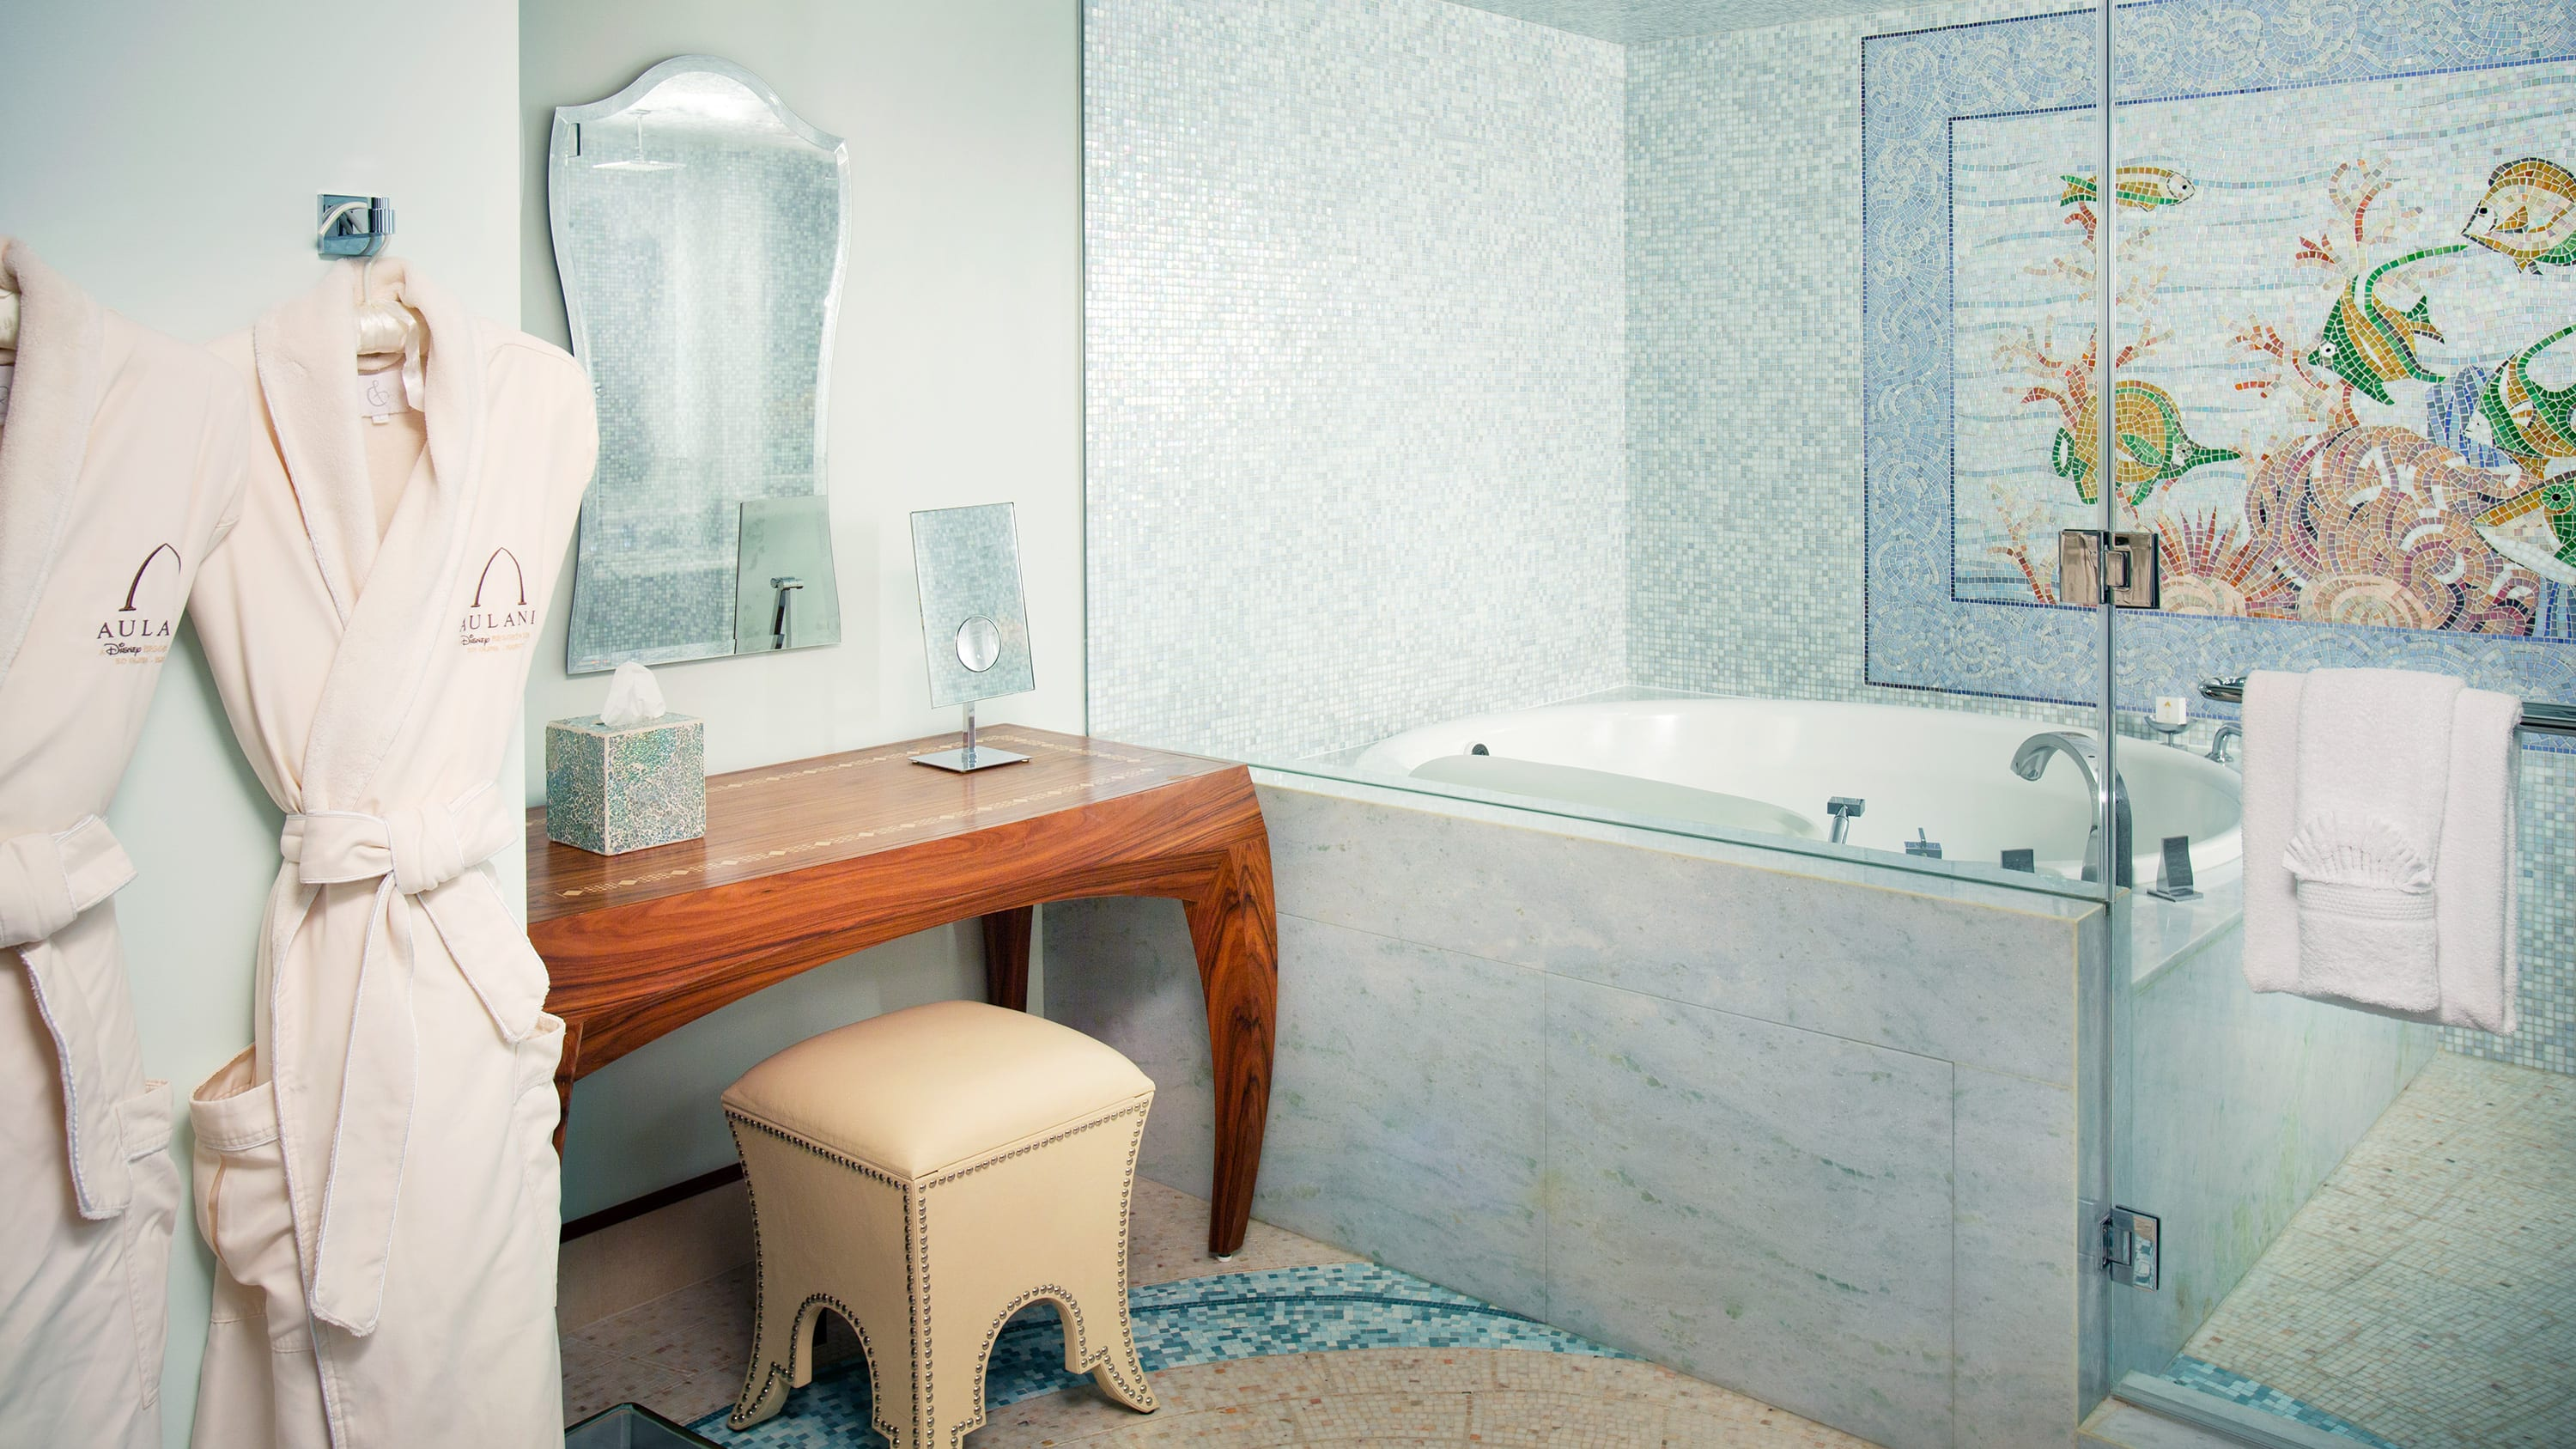 A bathtub, 2 robes, a stool, a vanity and towels